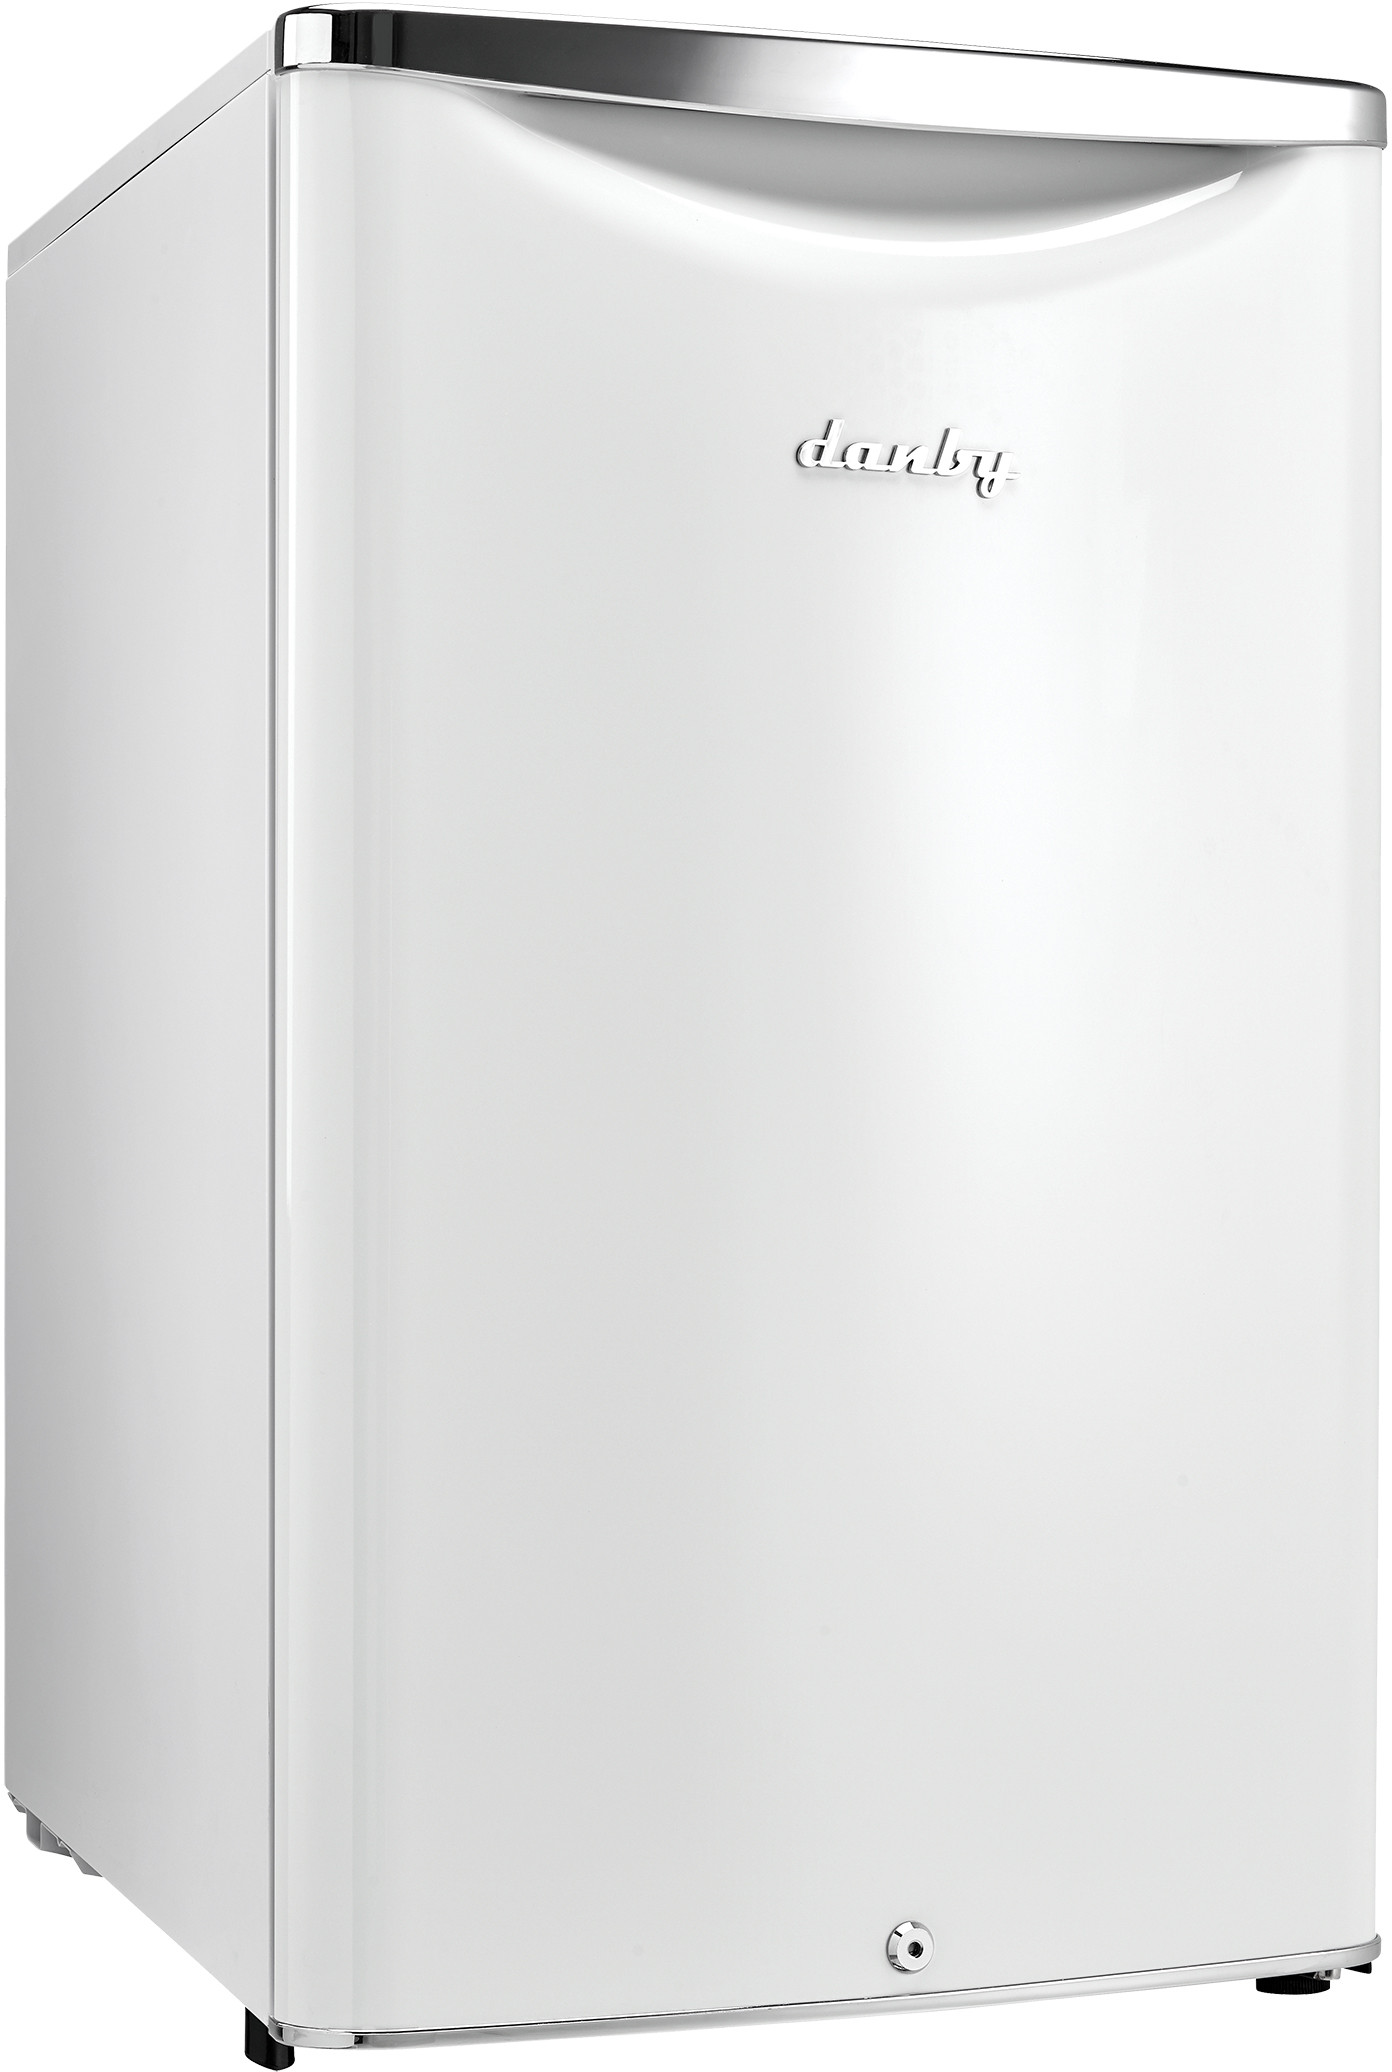 Haier Mini Fridge Elhalo Ge Compact 6 Cu Stainless Steel